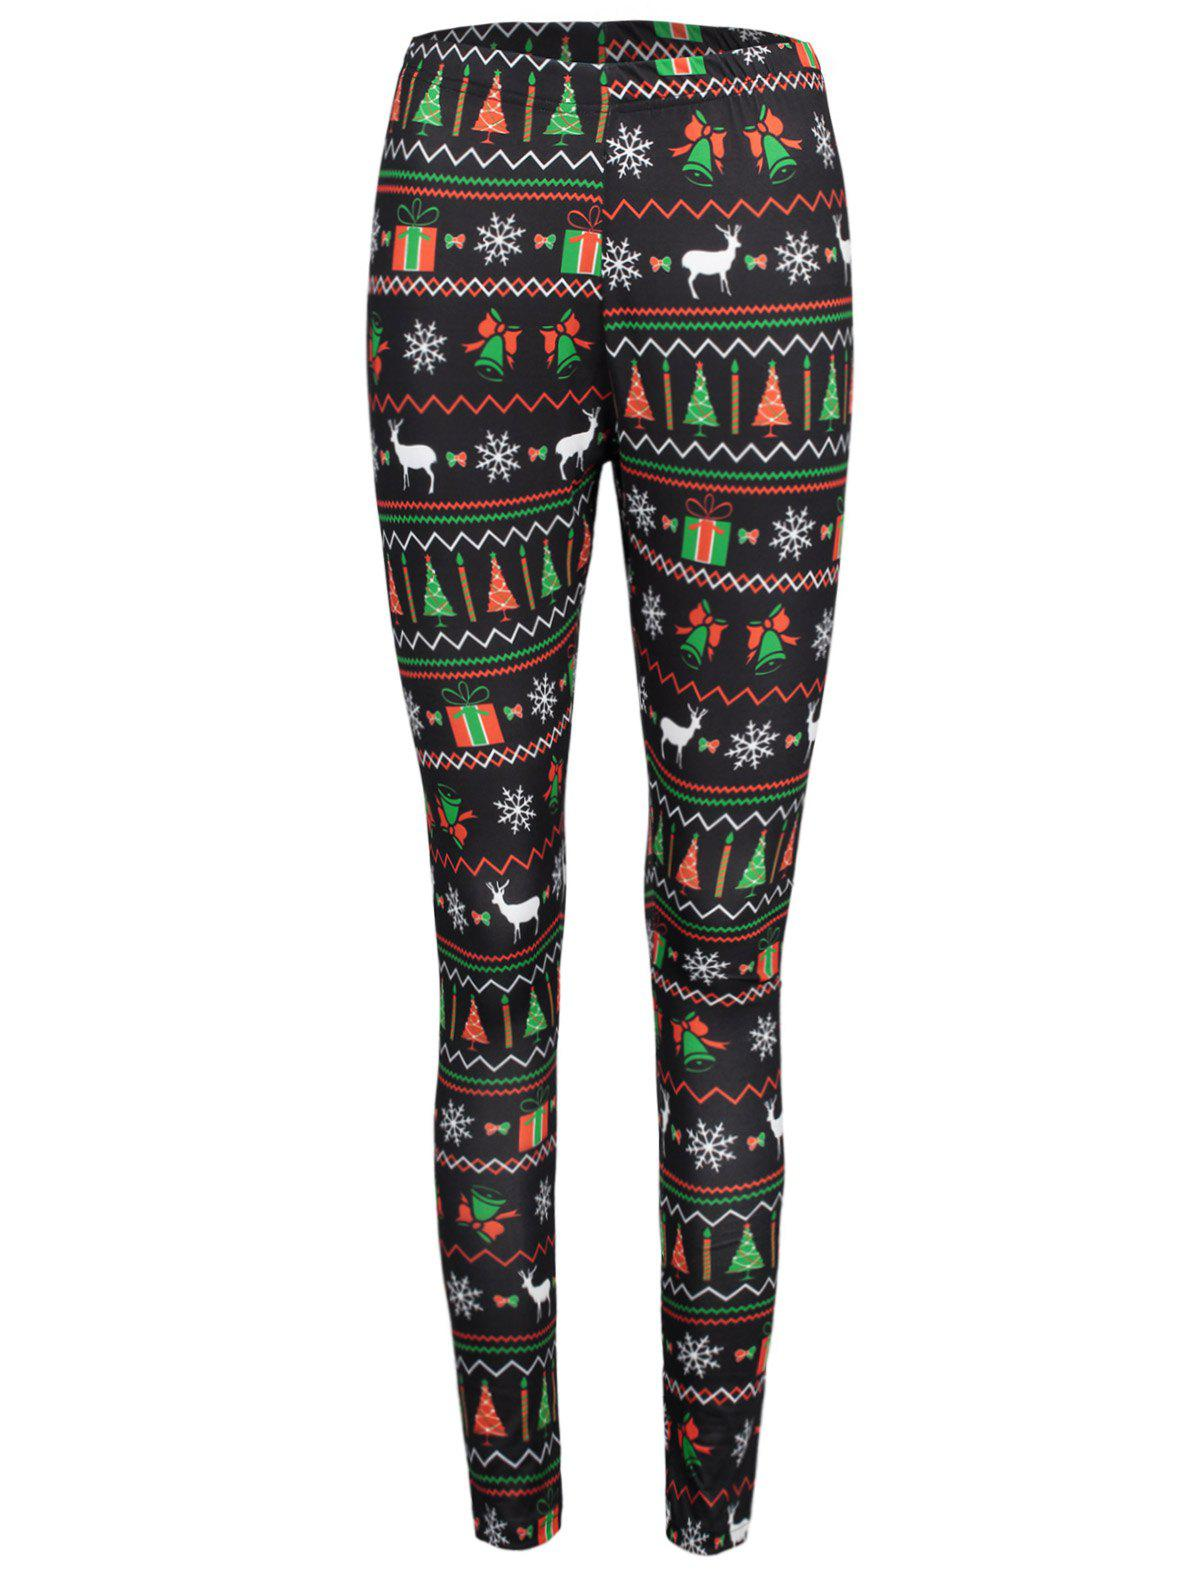 Christmas Ornaments Print Elastic Waist Workout LeggingsWOMEN<br><br>Size: M; Color: COLORMIX; Style: Casual; Material: Polyester,Spandex; Waist Type: Mid; Pattern Type: Print; Weight: 0.2200kg; Package Contents: 1 x Leggings;